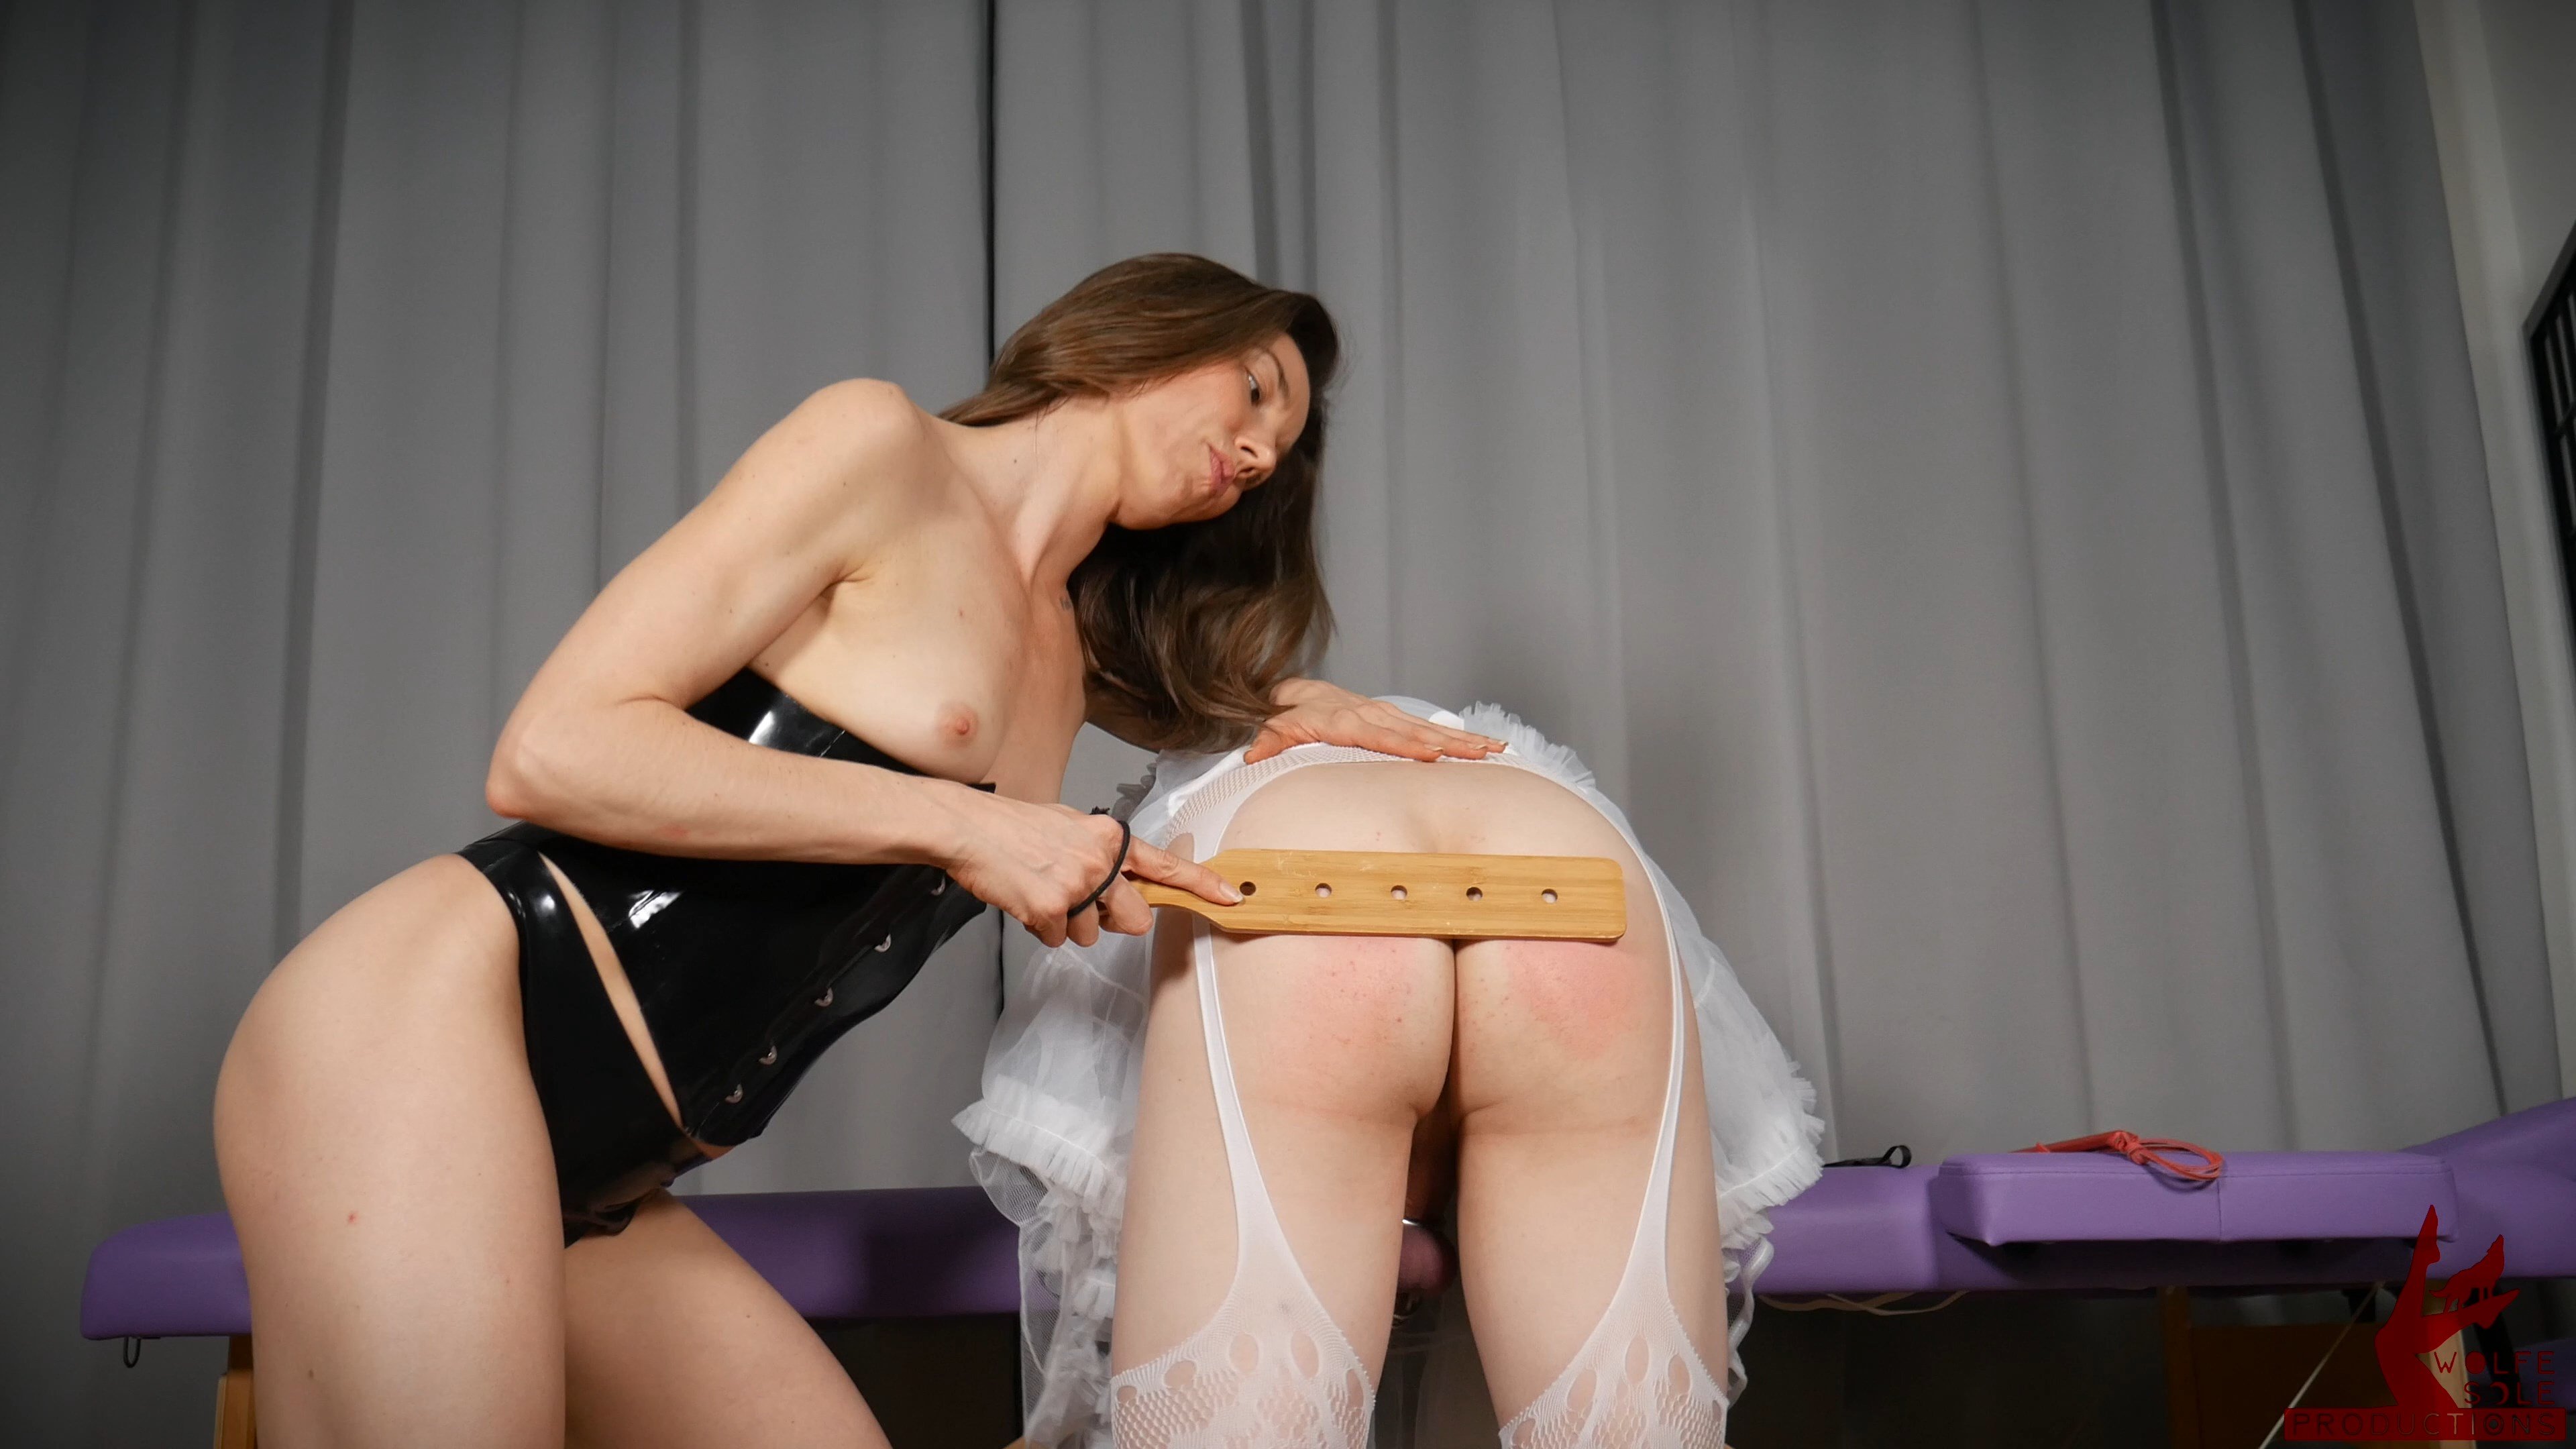 Goddess Wolfe - Mommy Will Spank The Embarrassment Away